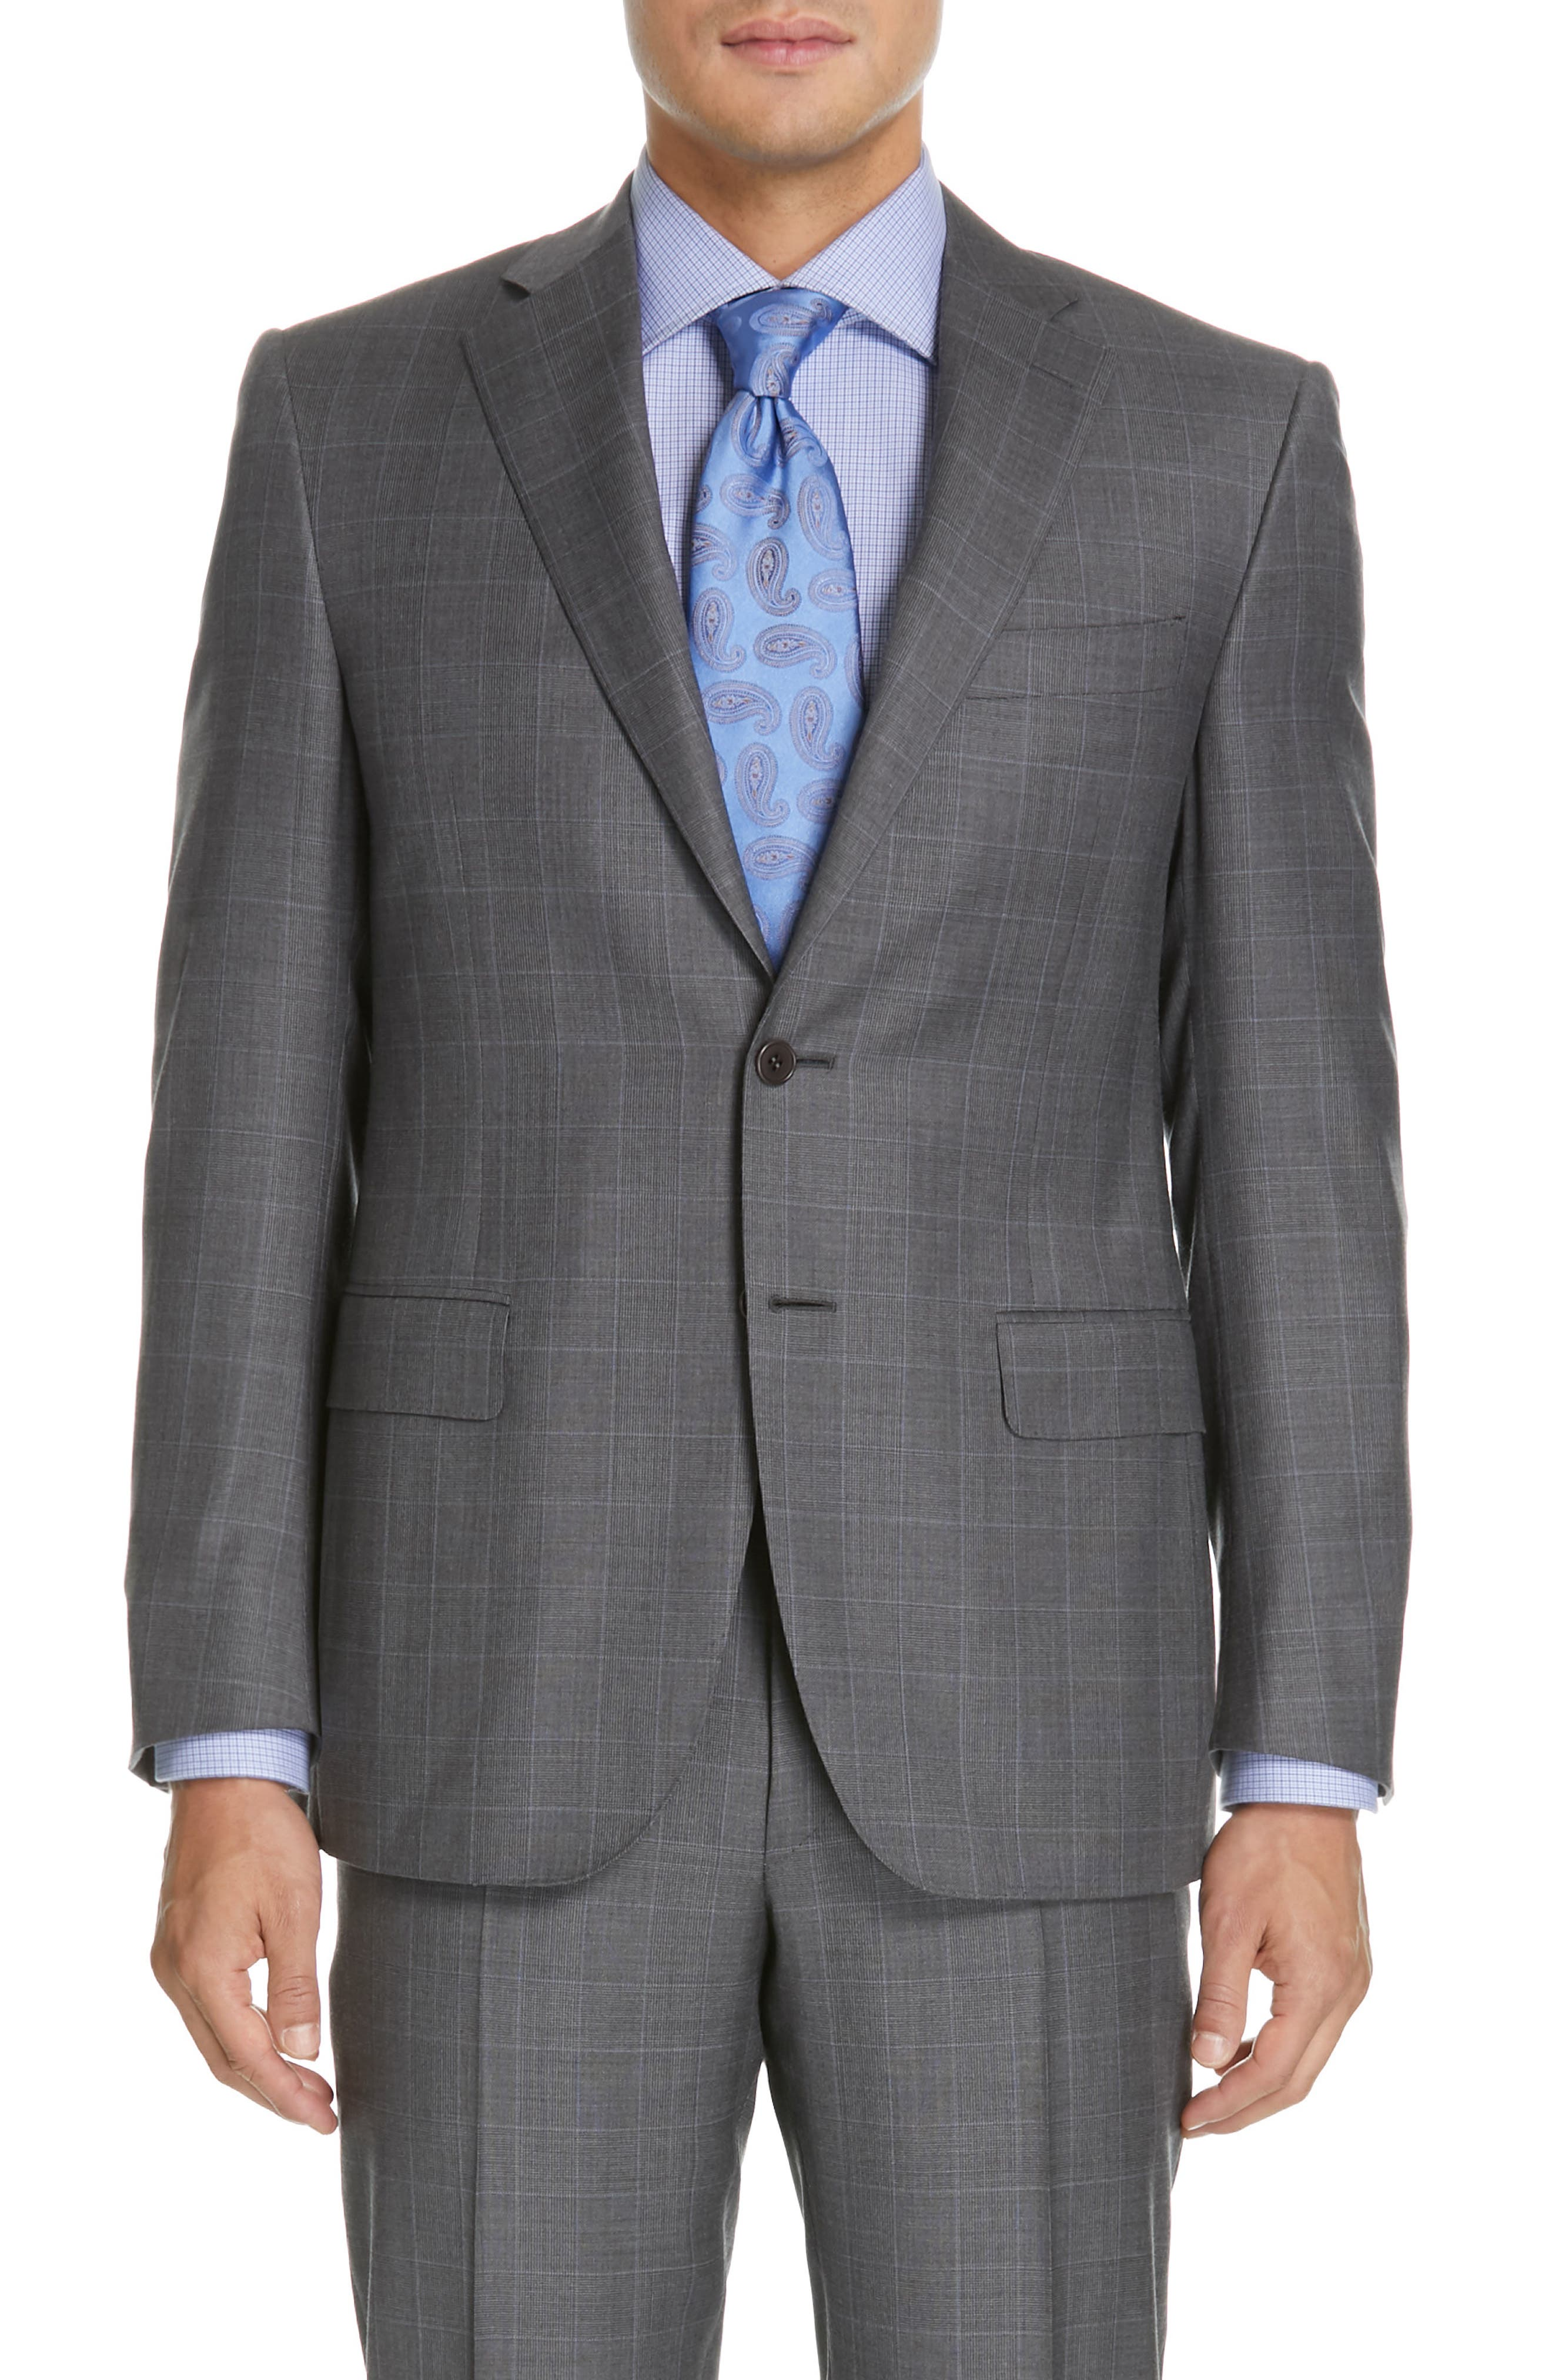 Sienna Classic Fit Plaid Wool Suit,                             Alternate thumbnail 5, color,                             GREY